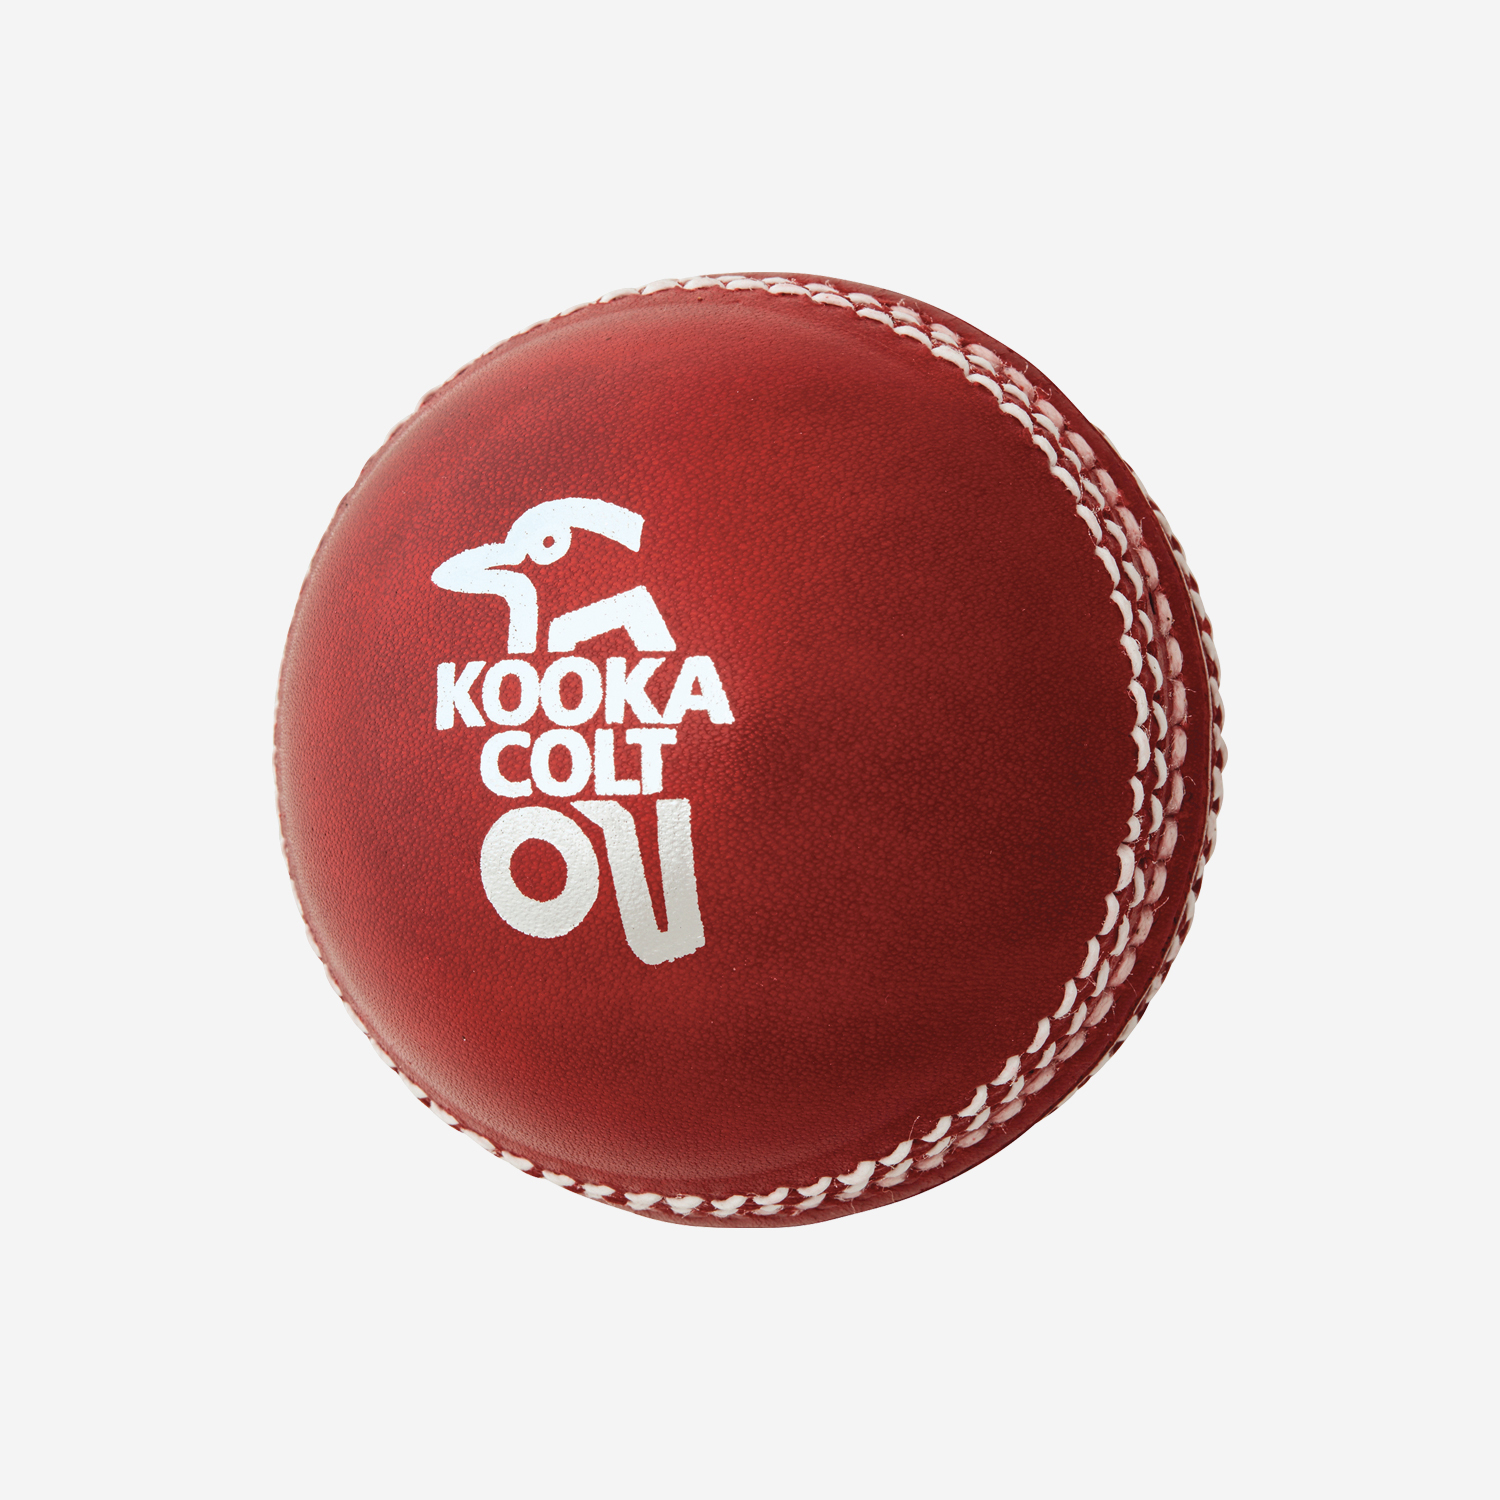 Kooka Colt Cricket Ball